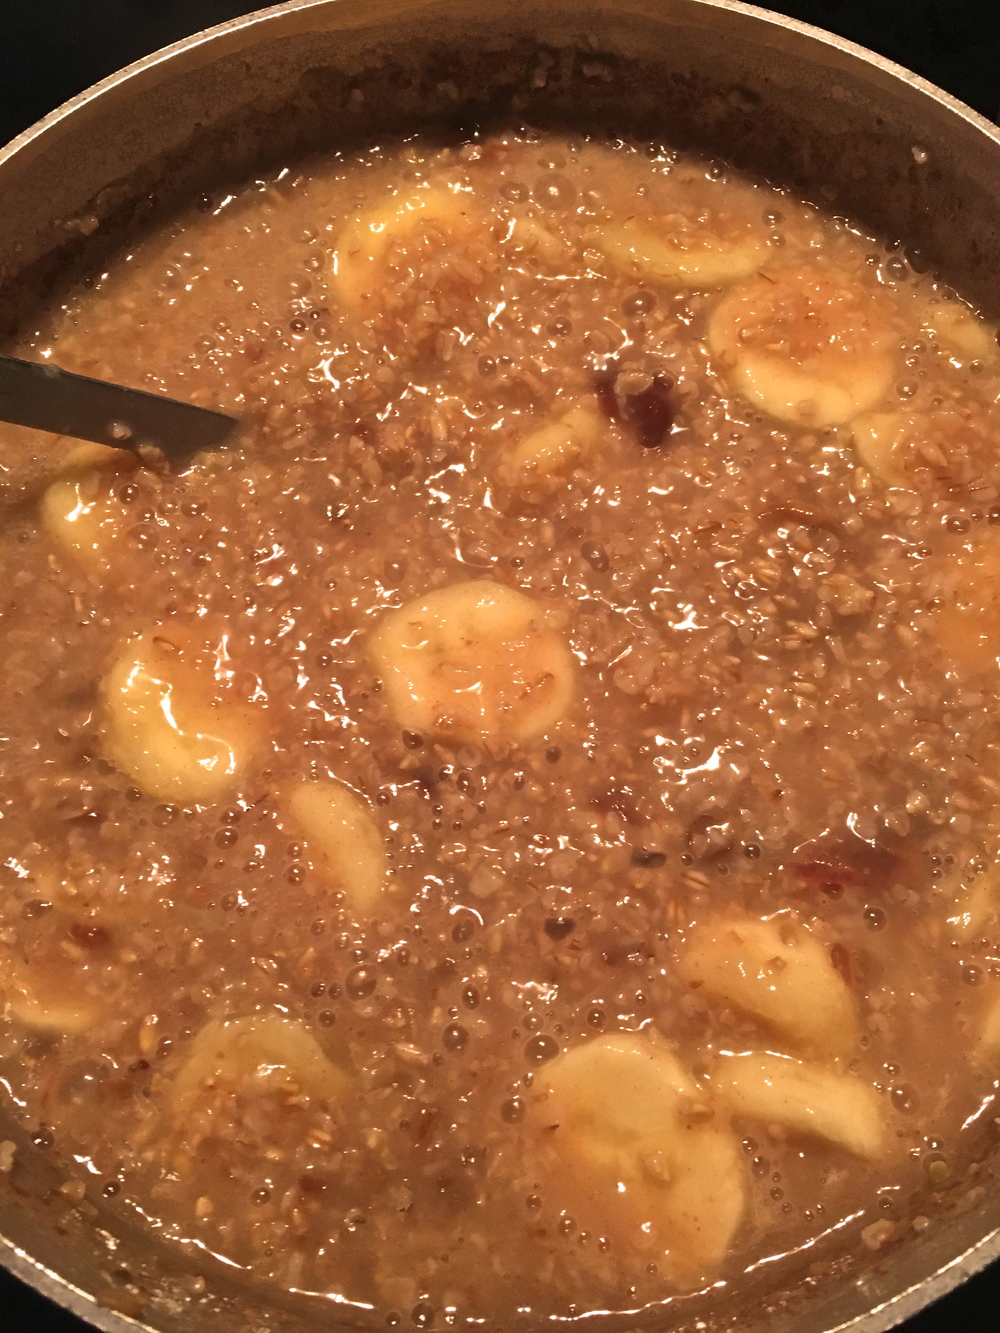 Steel-cut oatmeal is the go-to at the Homestead.  Here is a boiling pot with fresh banana and dates cooked inside (with cinnamon added).